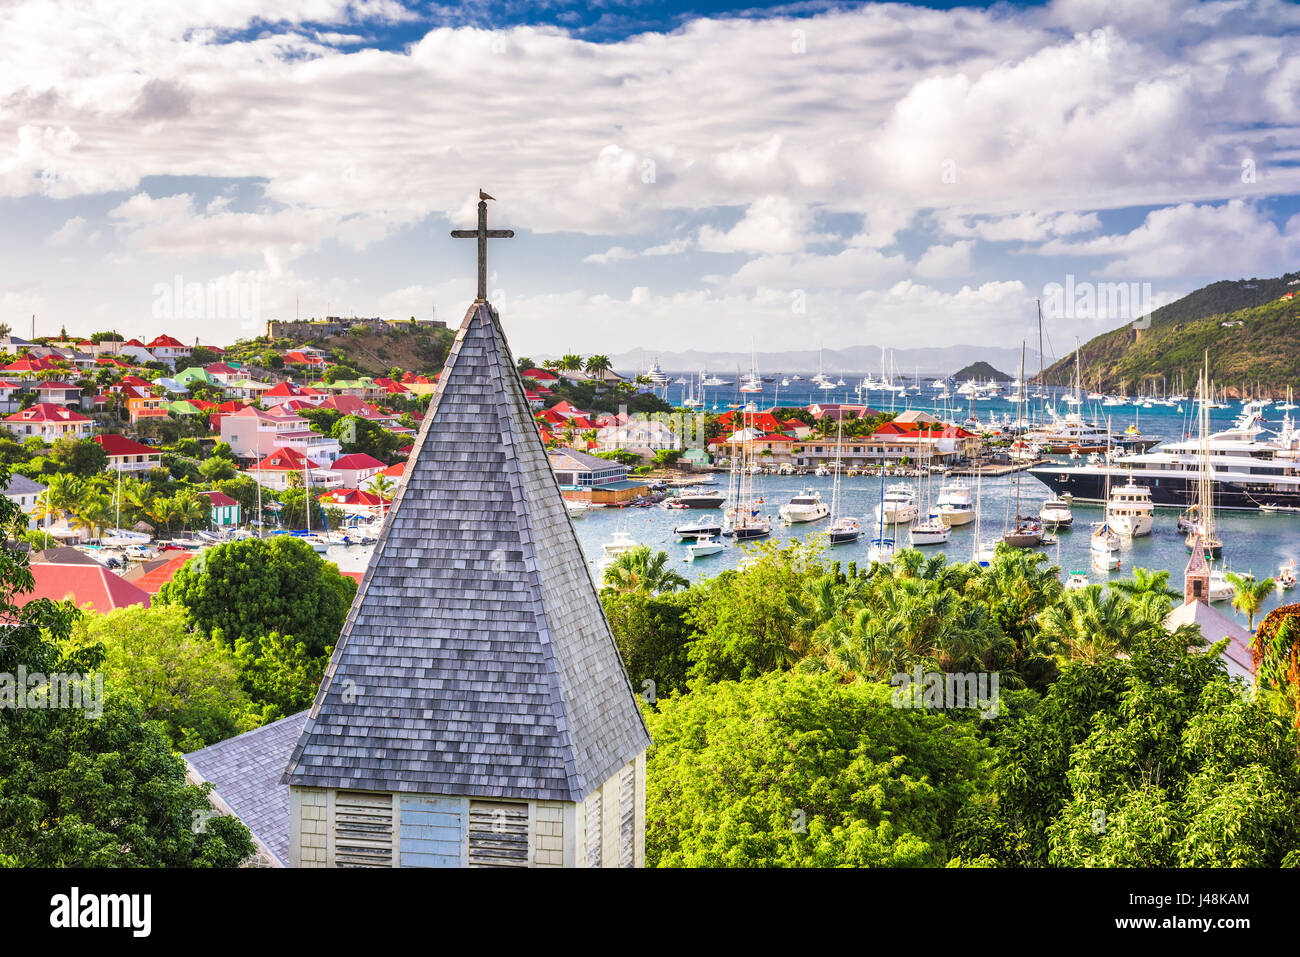 Saint Barthelemy Carribean view from behind Saint Barthelemy Anglican Church. Stock Photo